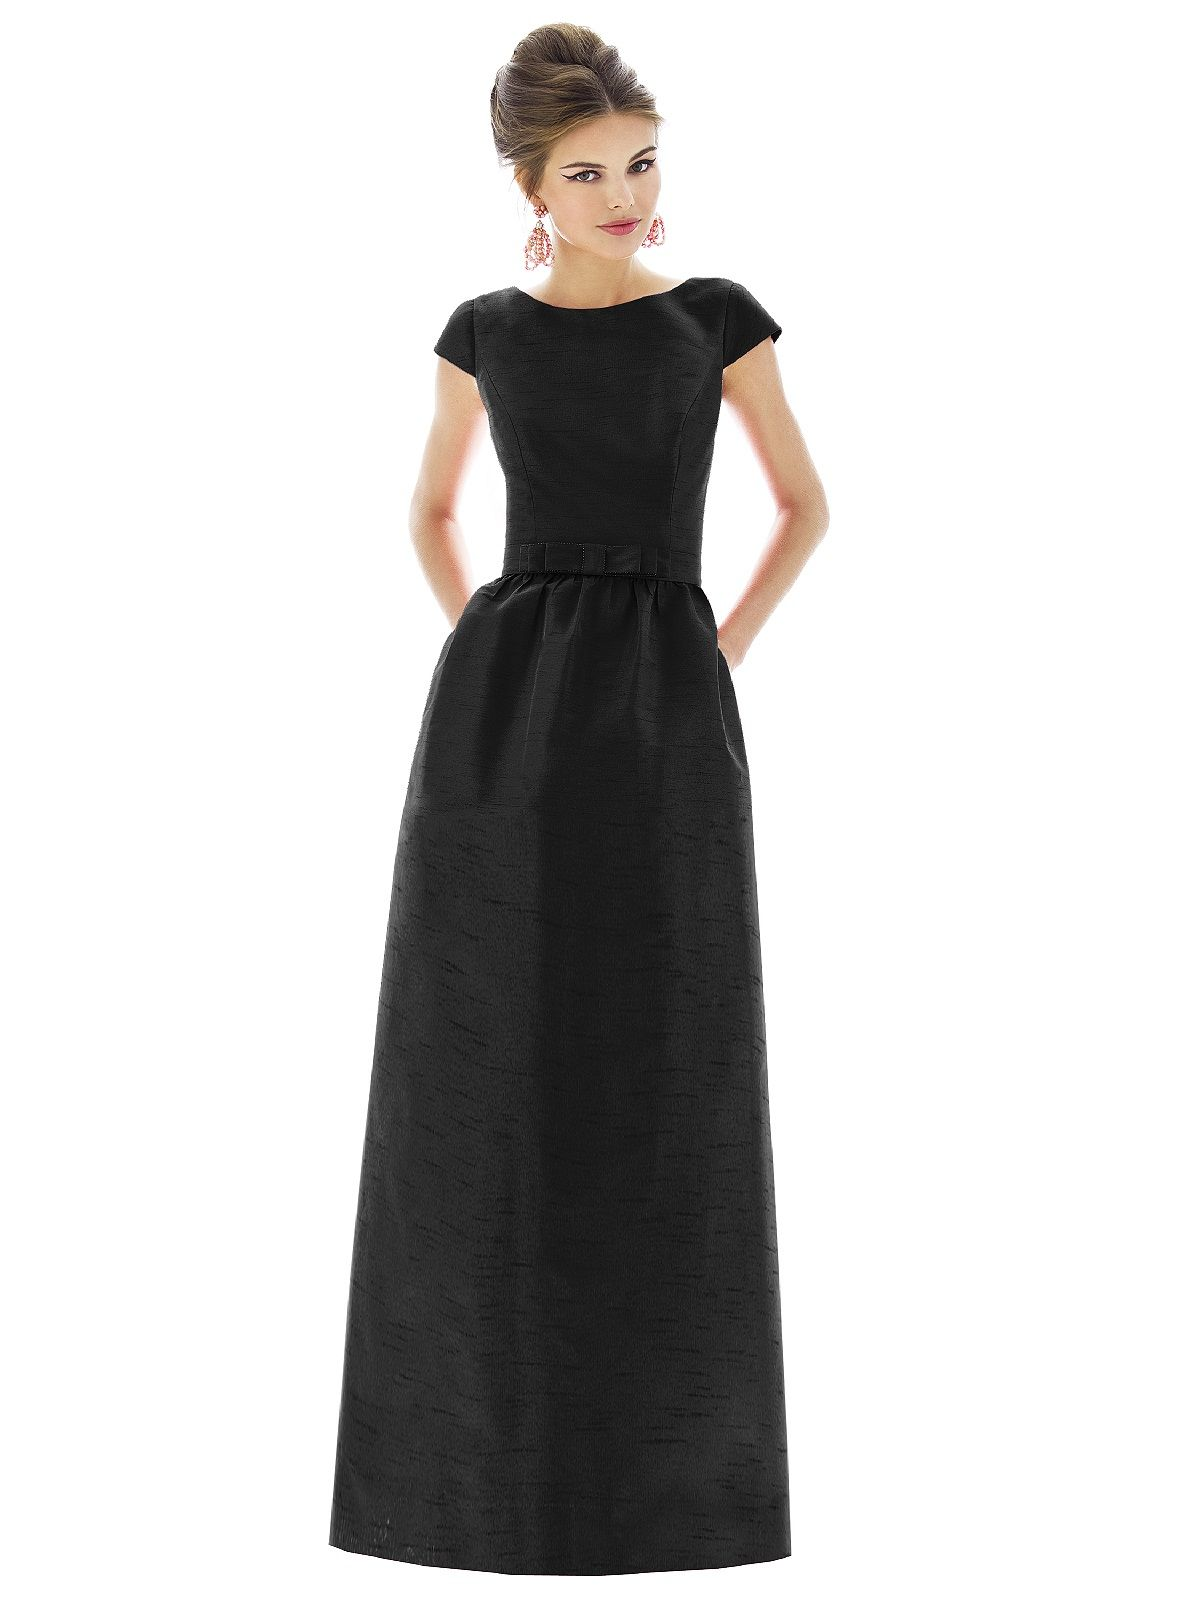 D571 dessy wedding pinterest alfred sung audrey d571 dessy cap sleeve bridesmaid dressblack tie bridesmaids dresseslong black dressesaudrey hepburn ombrellifo Image collections